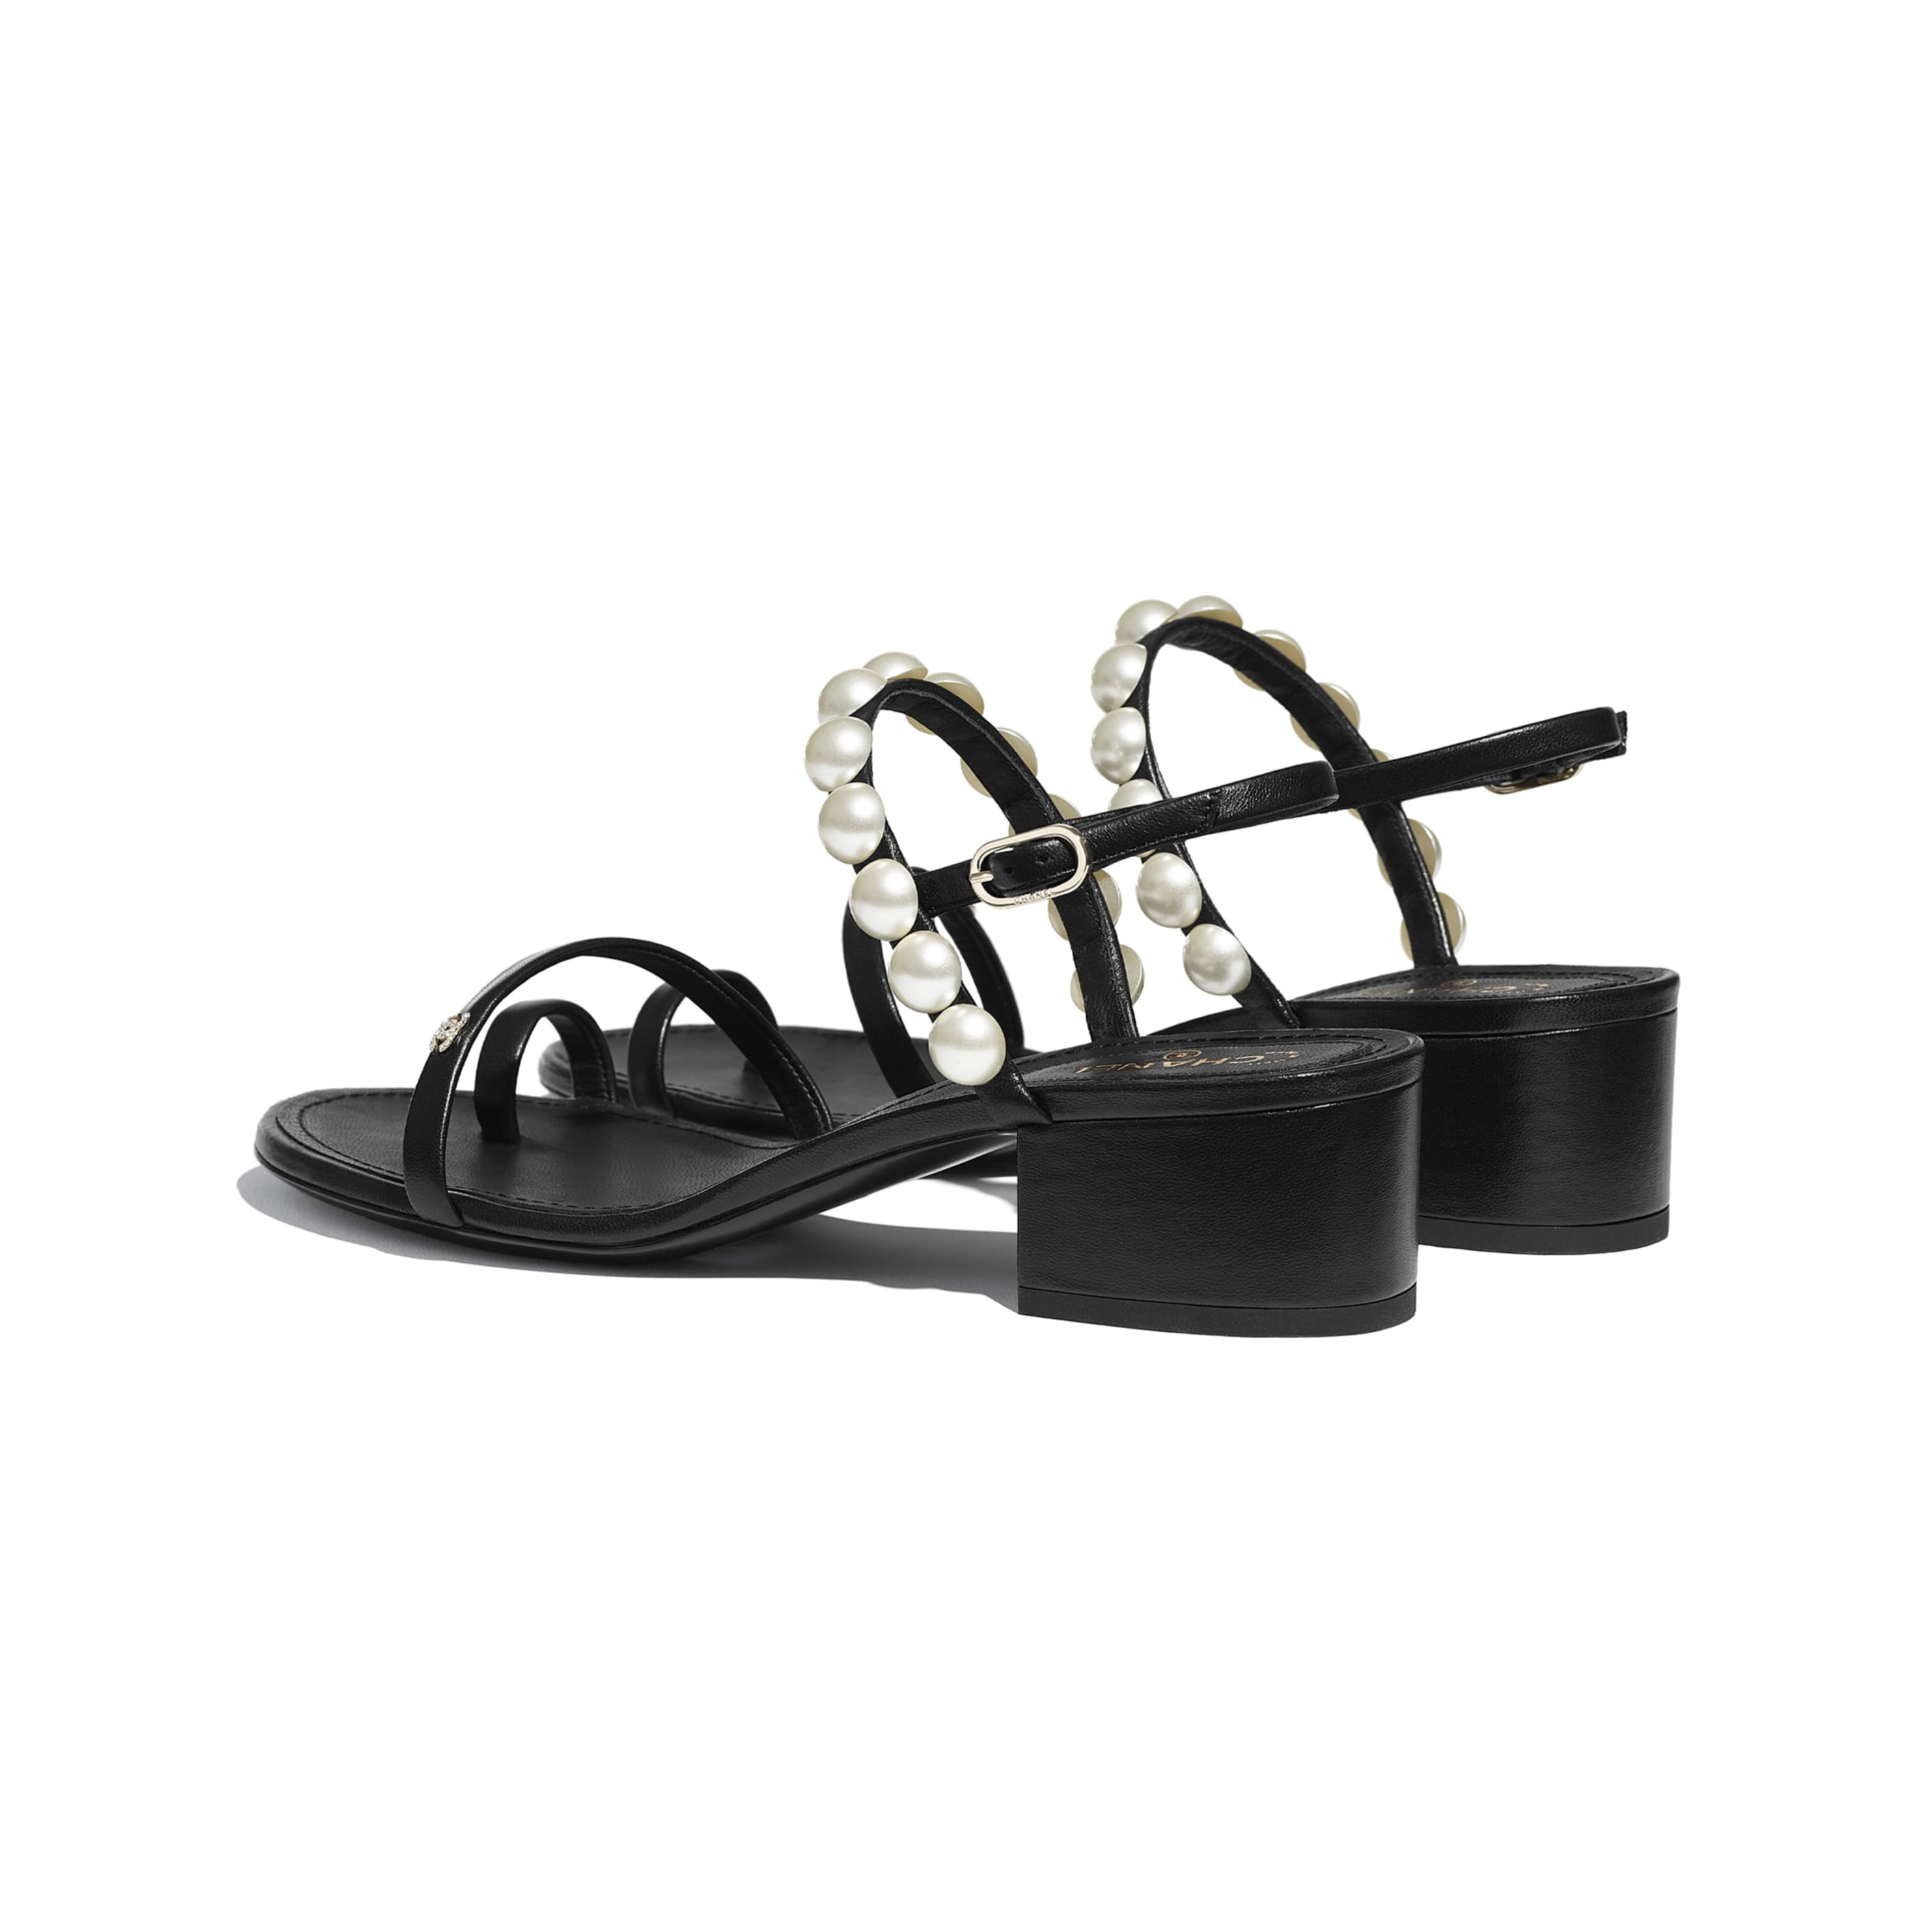 Sandals - Black - Lambskin & Pearls - CHANEL - Other view - see standard sized version